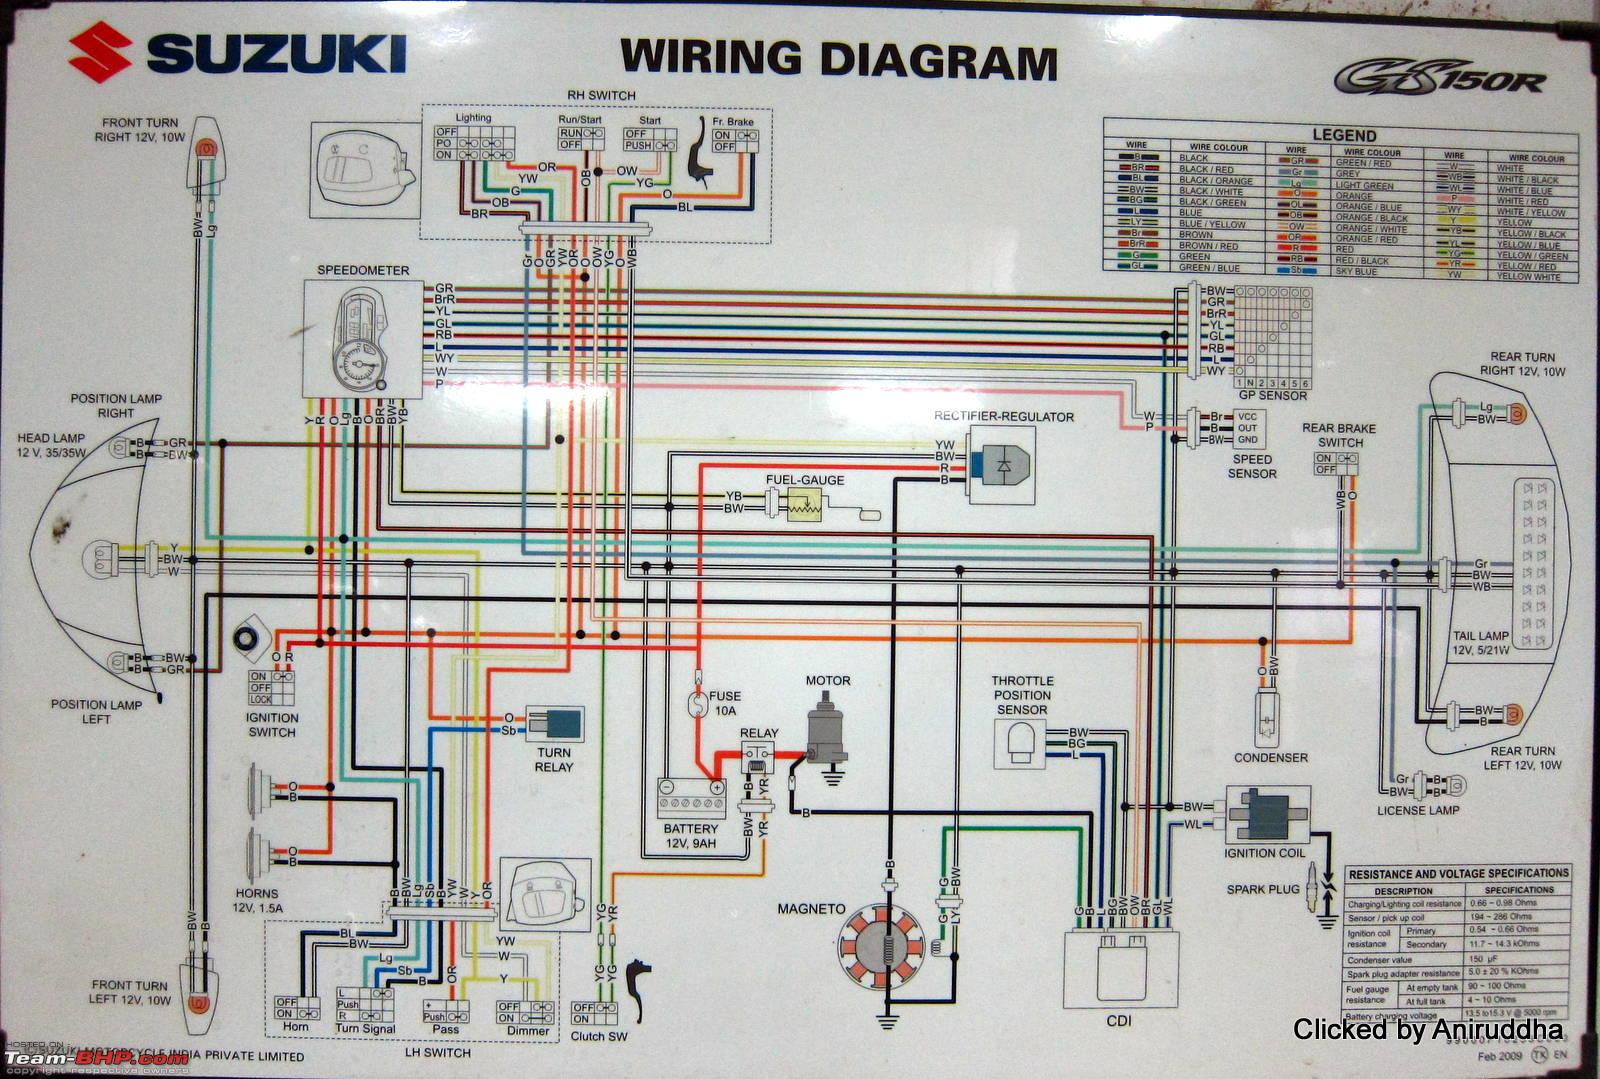 hight resolution of suzuki wiring diagram pdf wiring diagram info suzuki carry wiring diagram pdf suzuki motorcycle wiring diagram